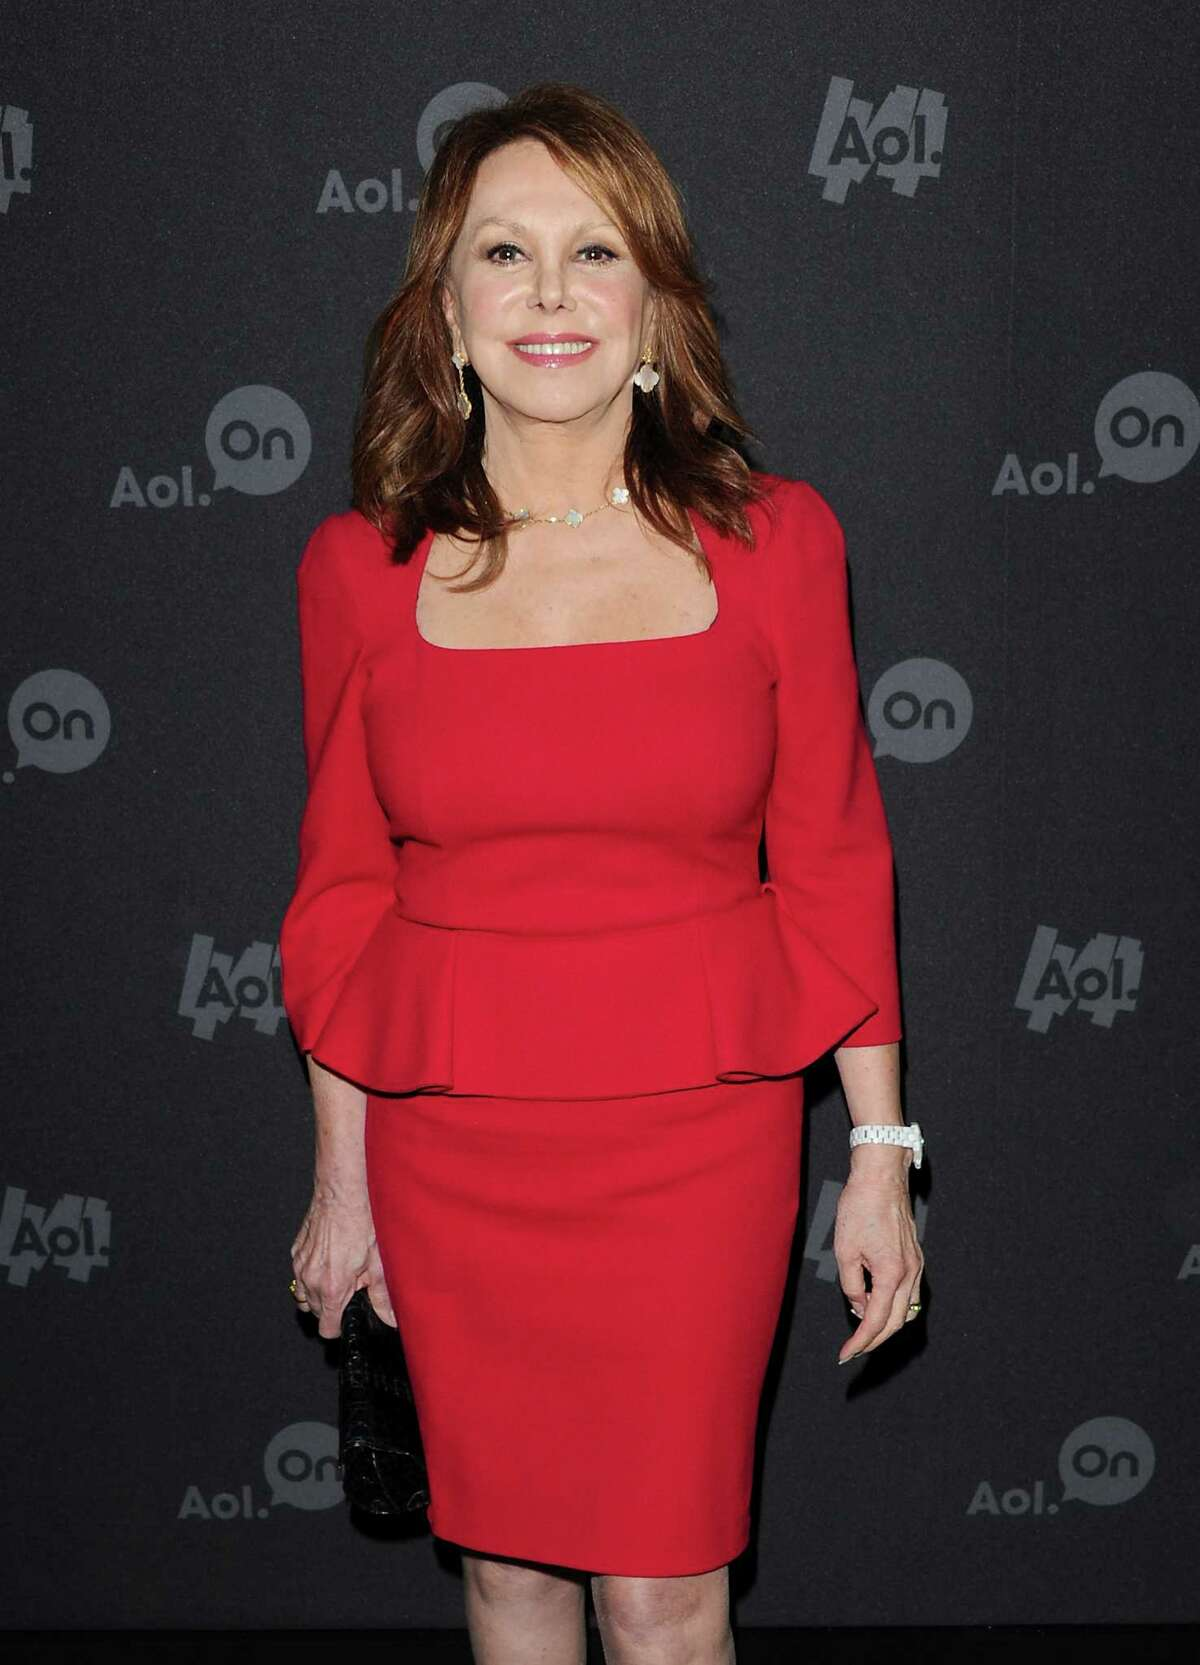 Actress Marlo Thomas attends AOL's web series